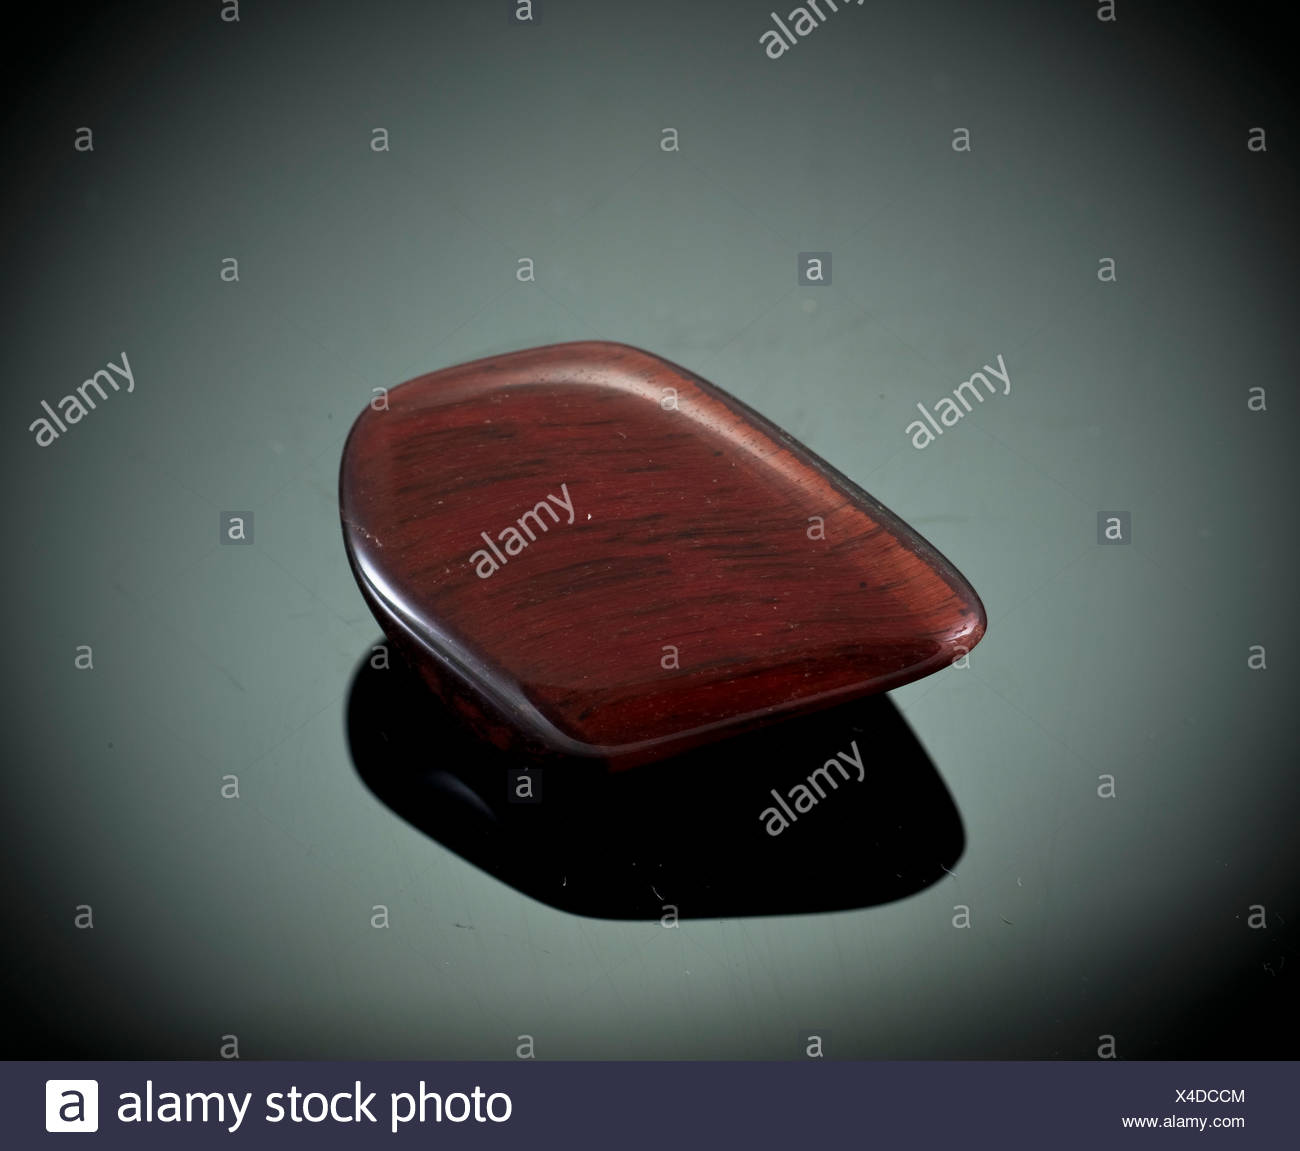 Cutout of a brecciated jasper gemstone on black background - Stock Image